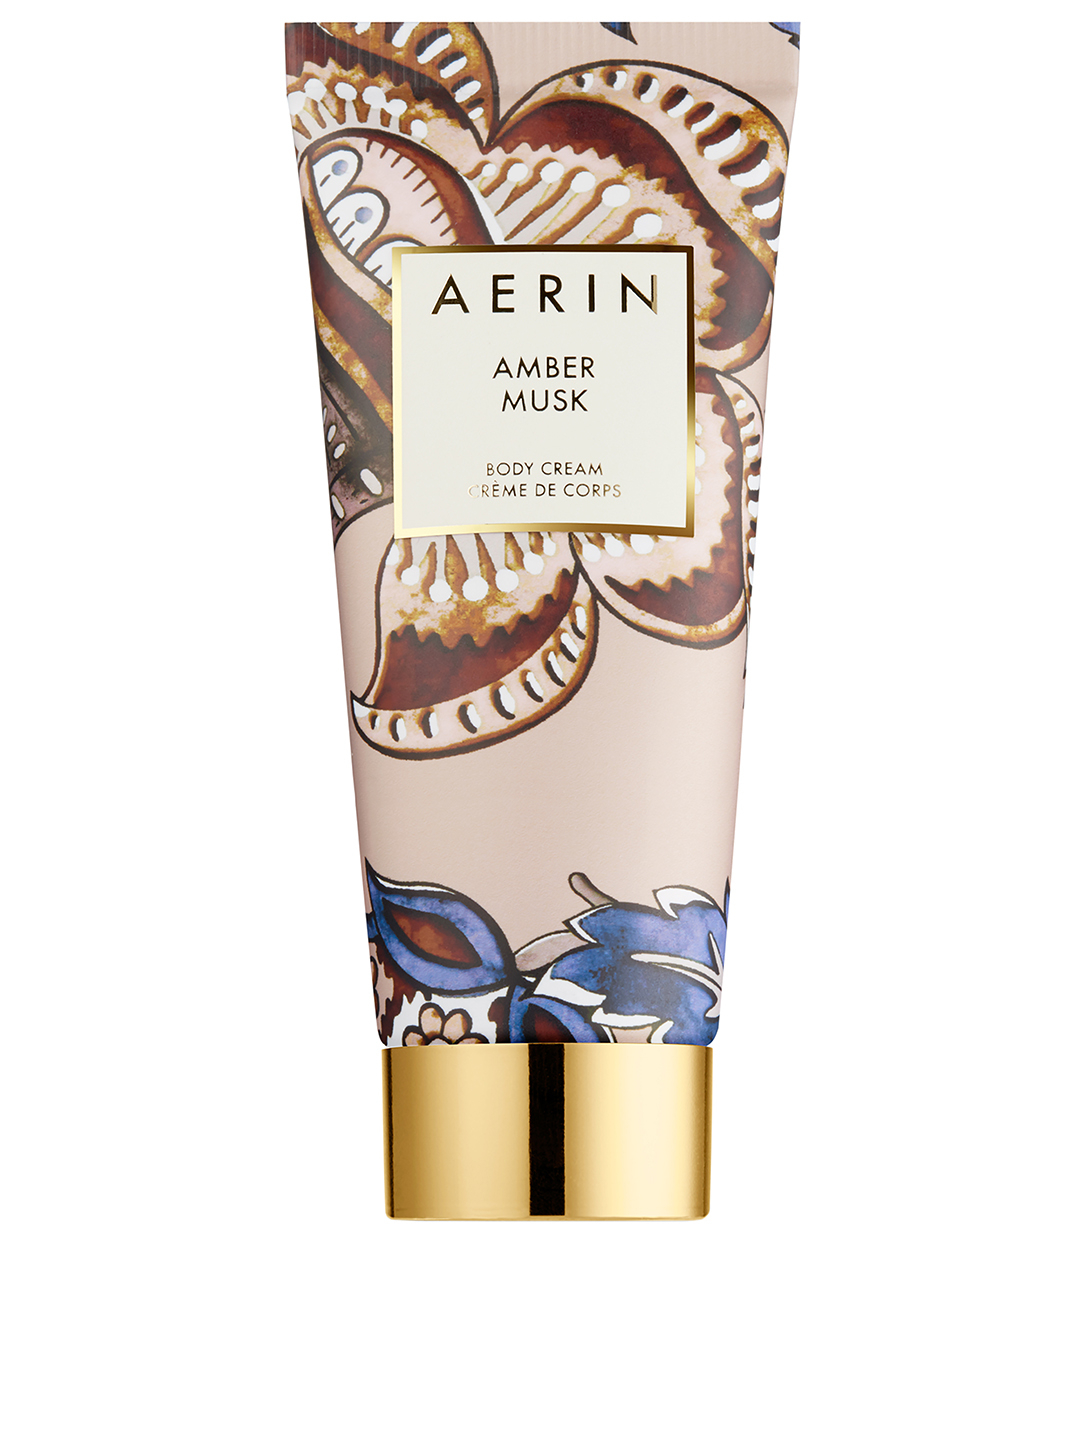 AERIN Amber Musk Body Cream Beauty